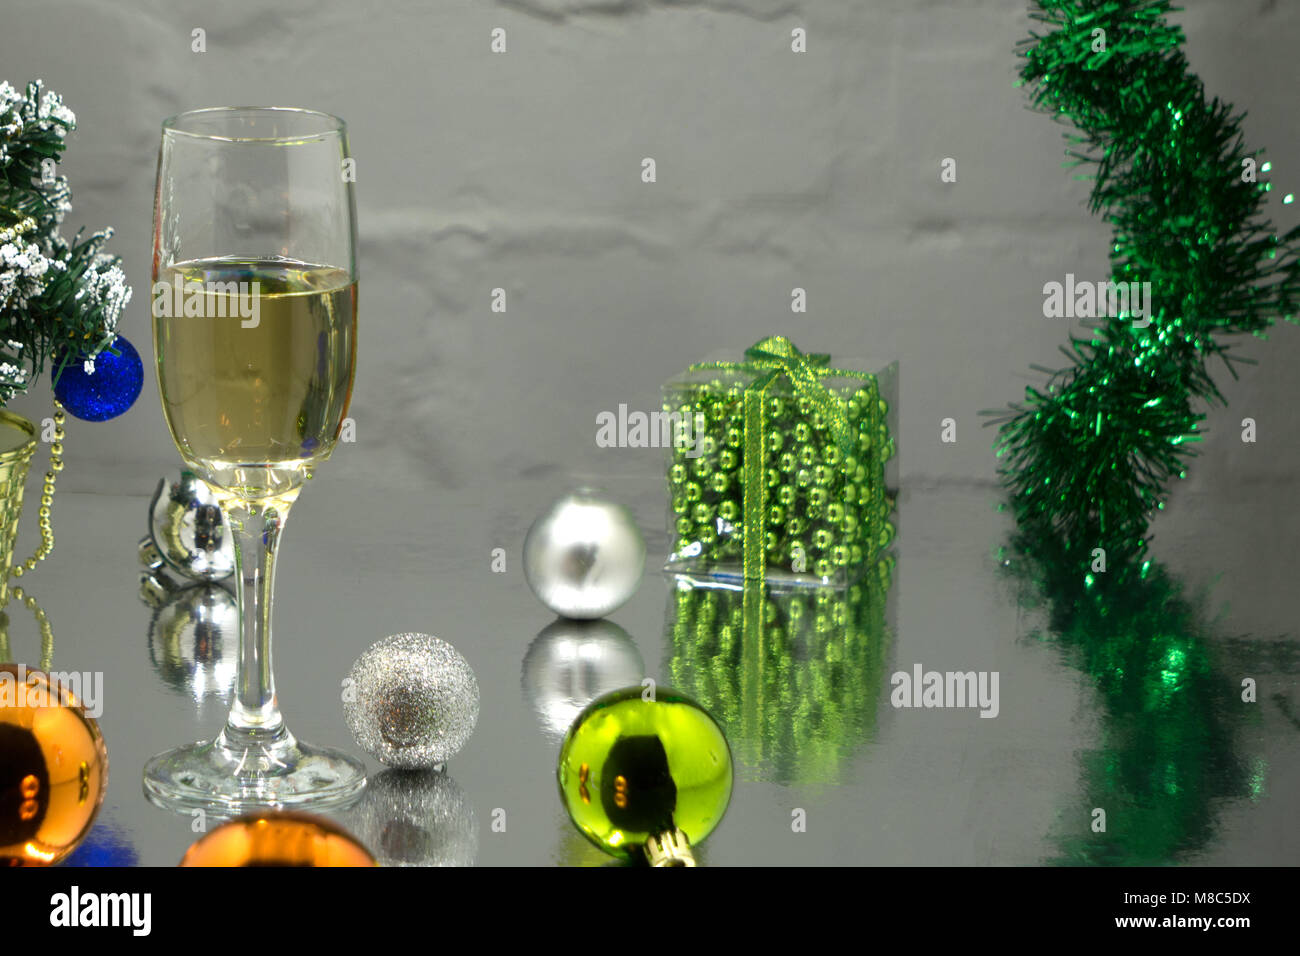 Gift boxes with champagne flutes against gray background - Stock Image